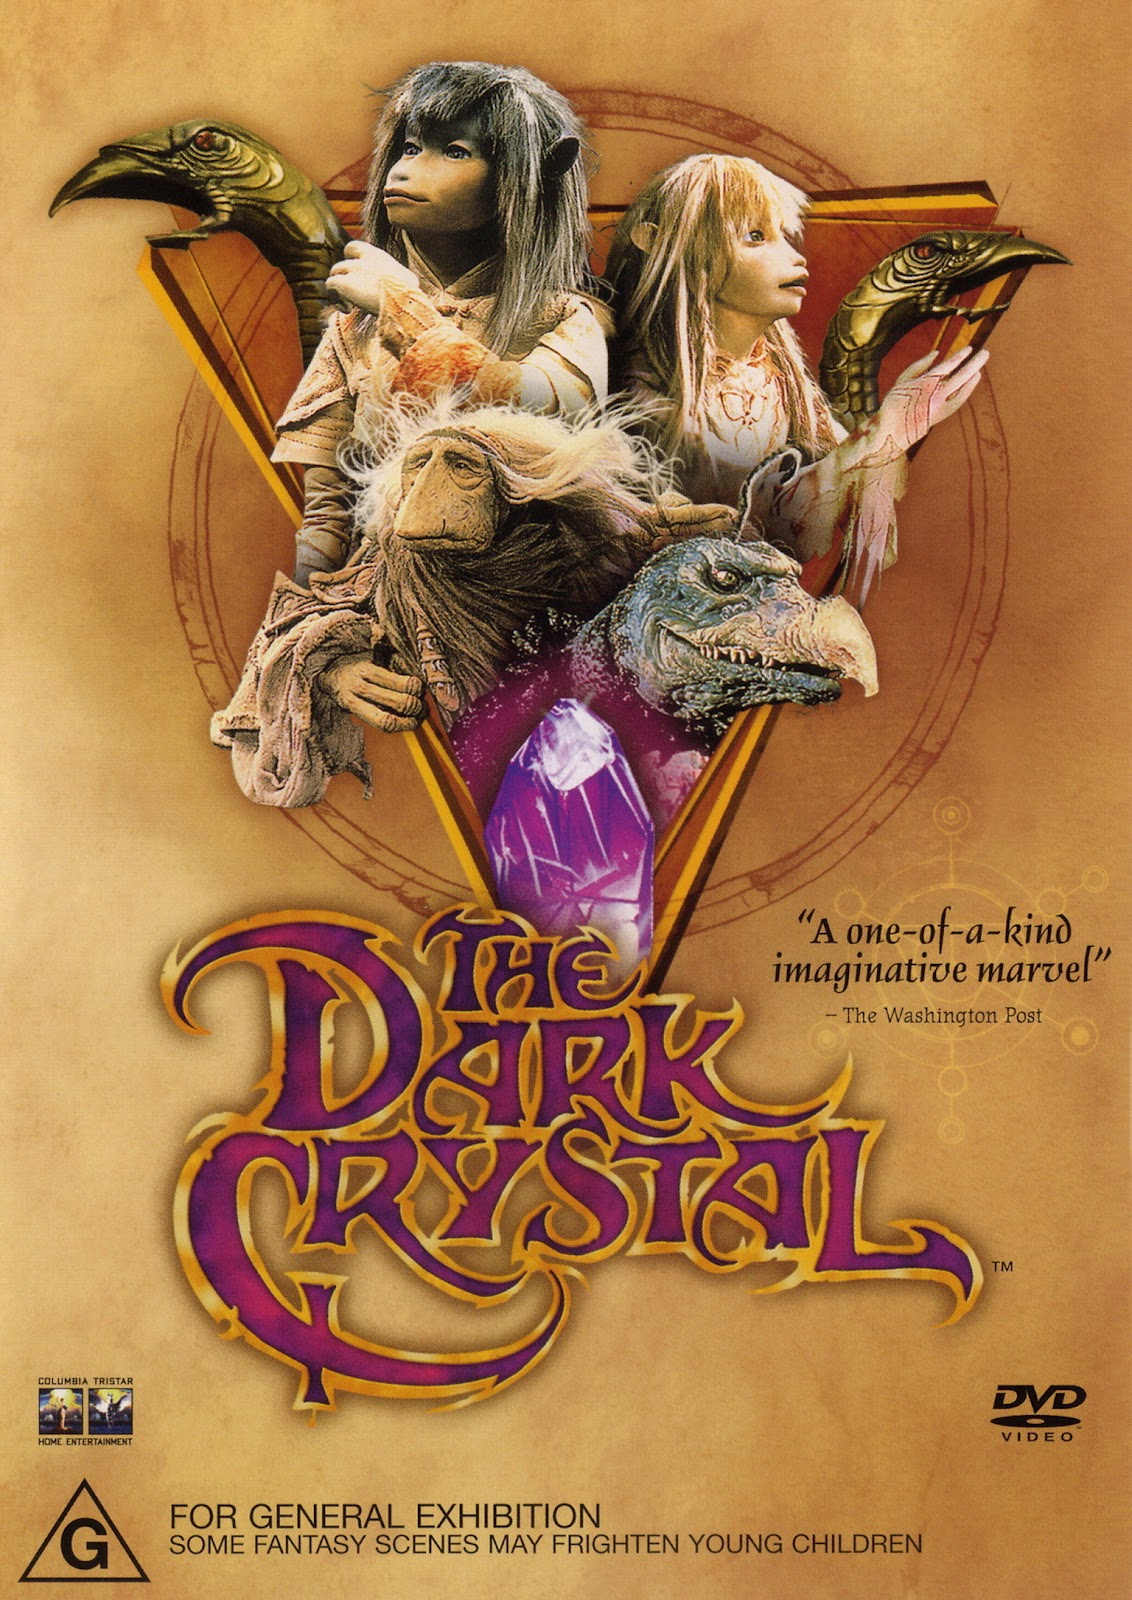 the dark crystal 1982 Whats Better? The Dark Crystal vs. Labyrinth